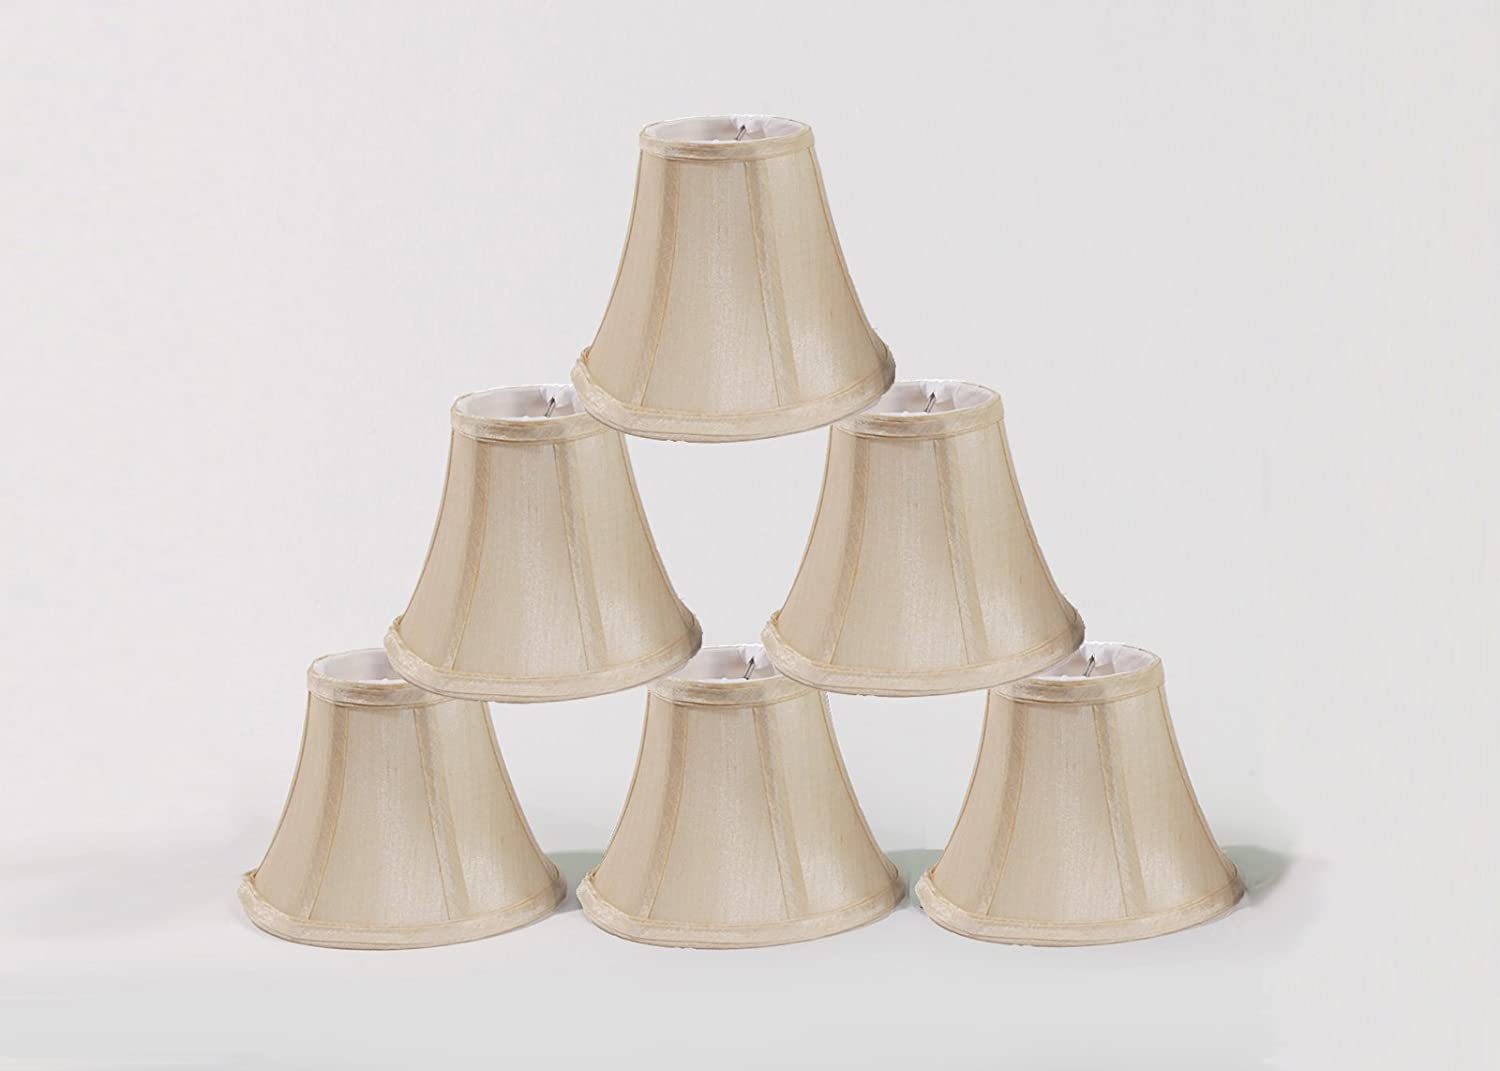 Urbanest chandelier lamp shades set of 6 soft bell 3x 6x 5 urbanest chandelier lamp shades set of 6 soft bell 3x 6x 5 cream clip on amazon mozeypictures Image collections